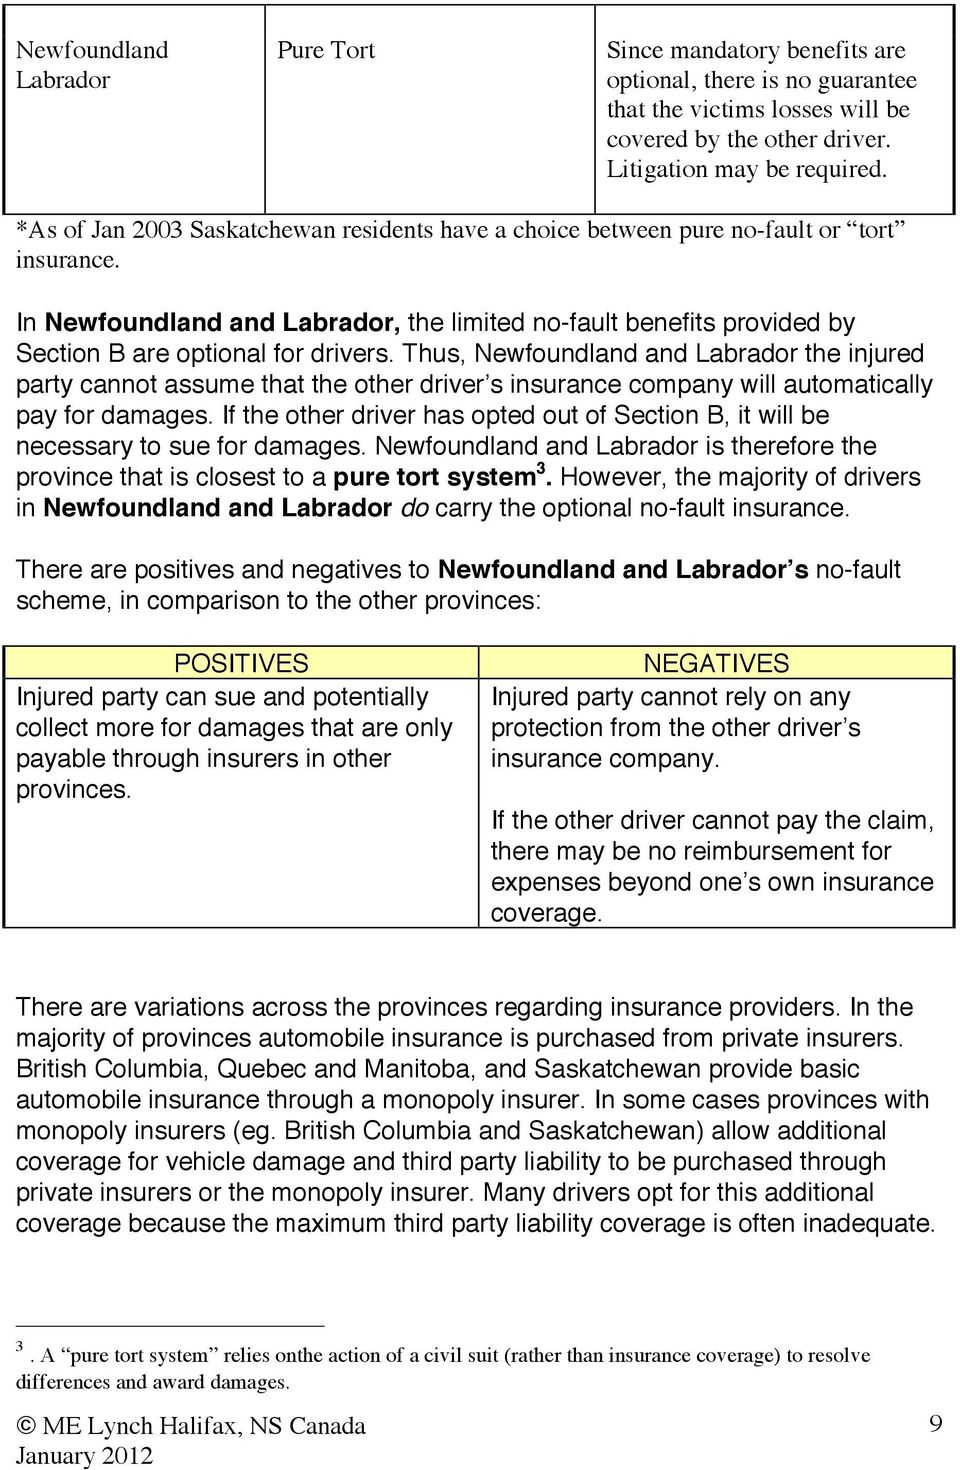 In Newfoundland and Labrador, the limited no-fault benefits provided by Section B are optional for drivers.